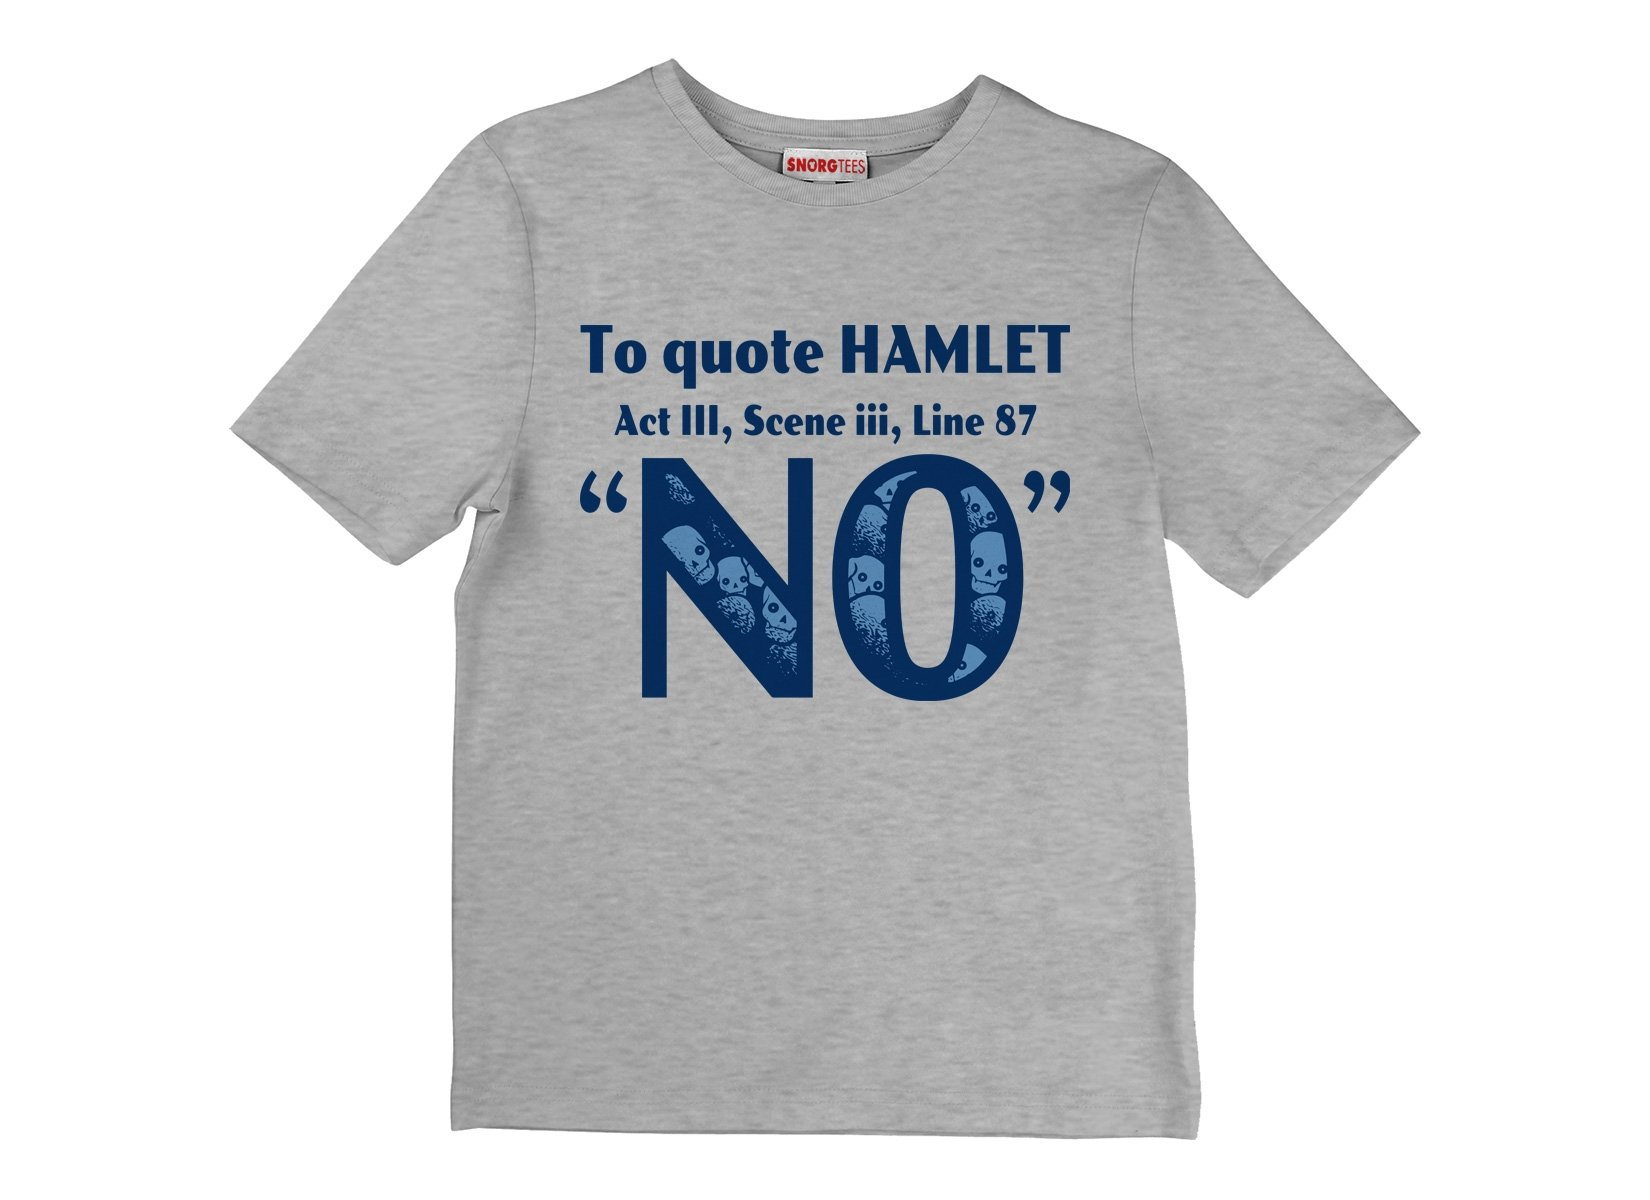 To Quote Hamlet on Kids T-Shirt